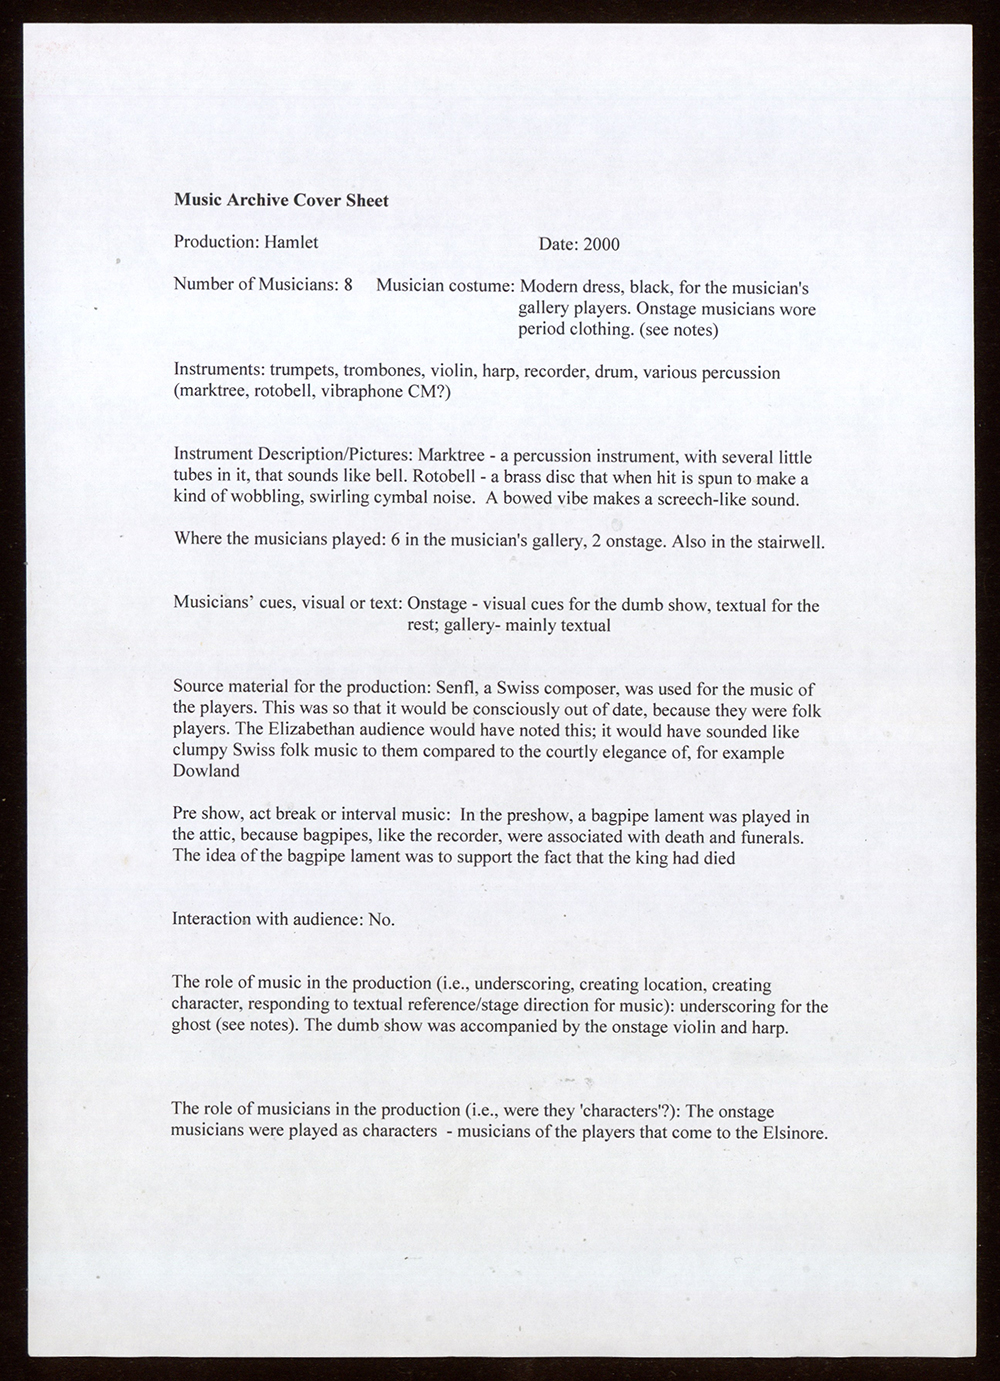 A document listing the music in Hamlet.